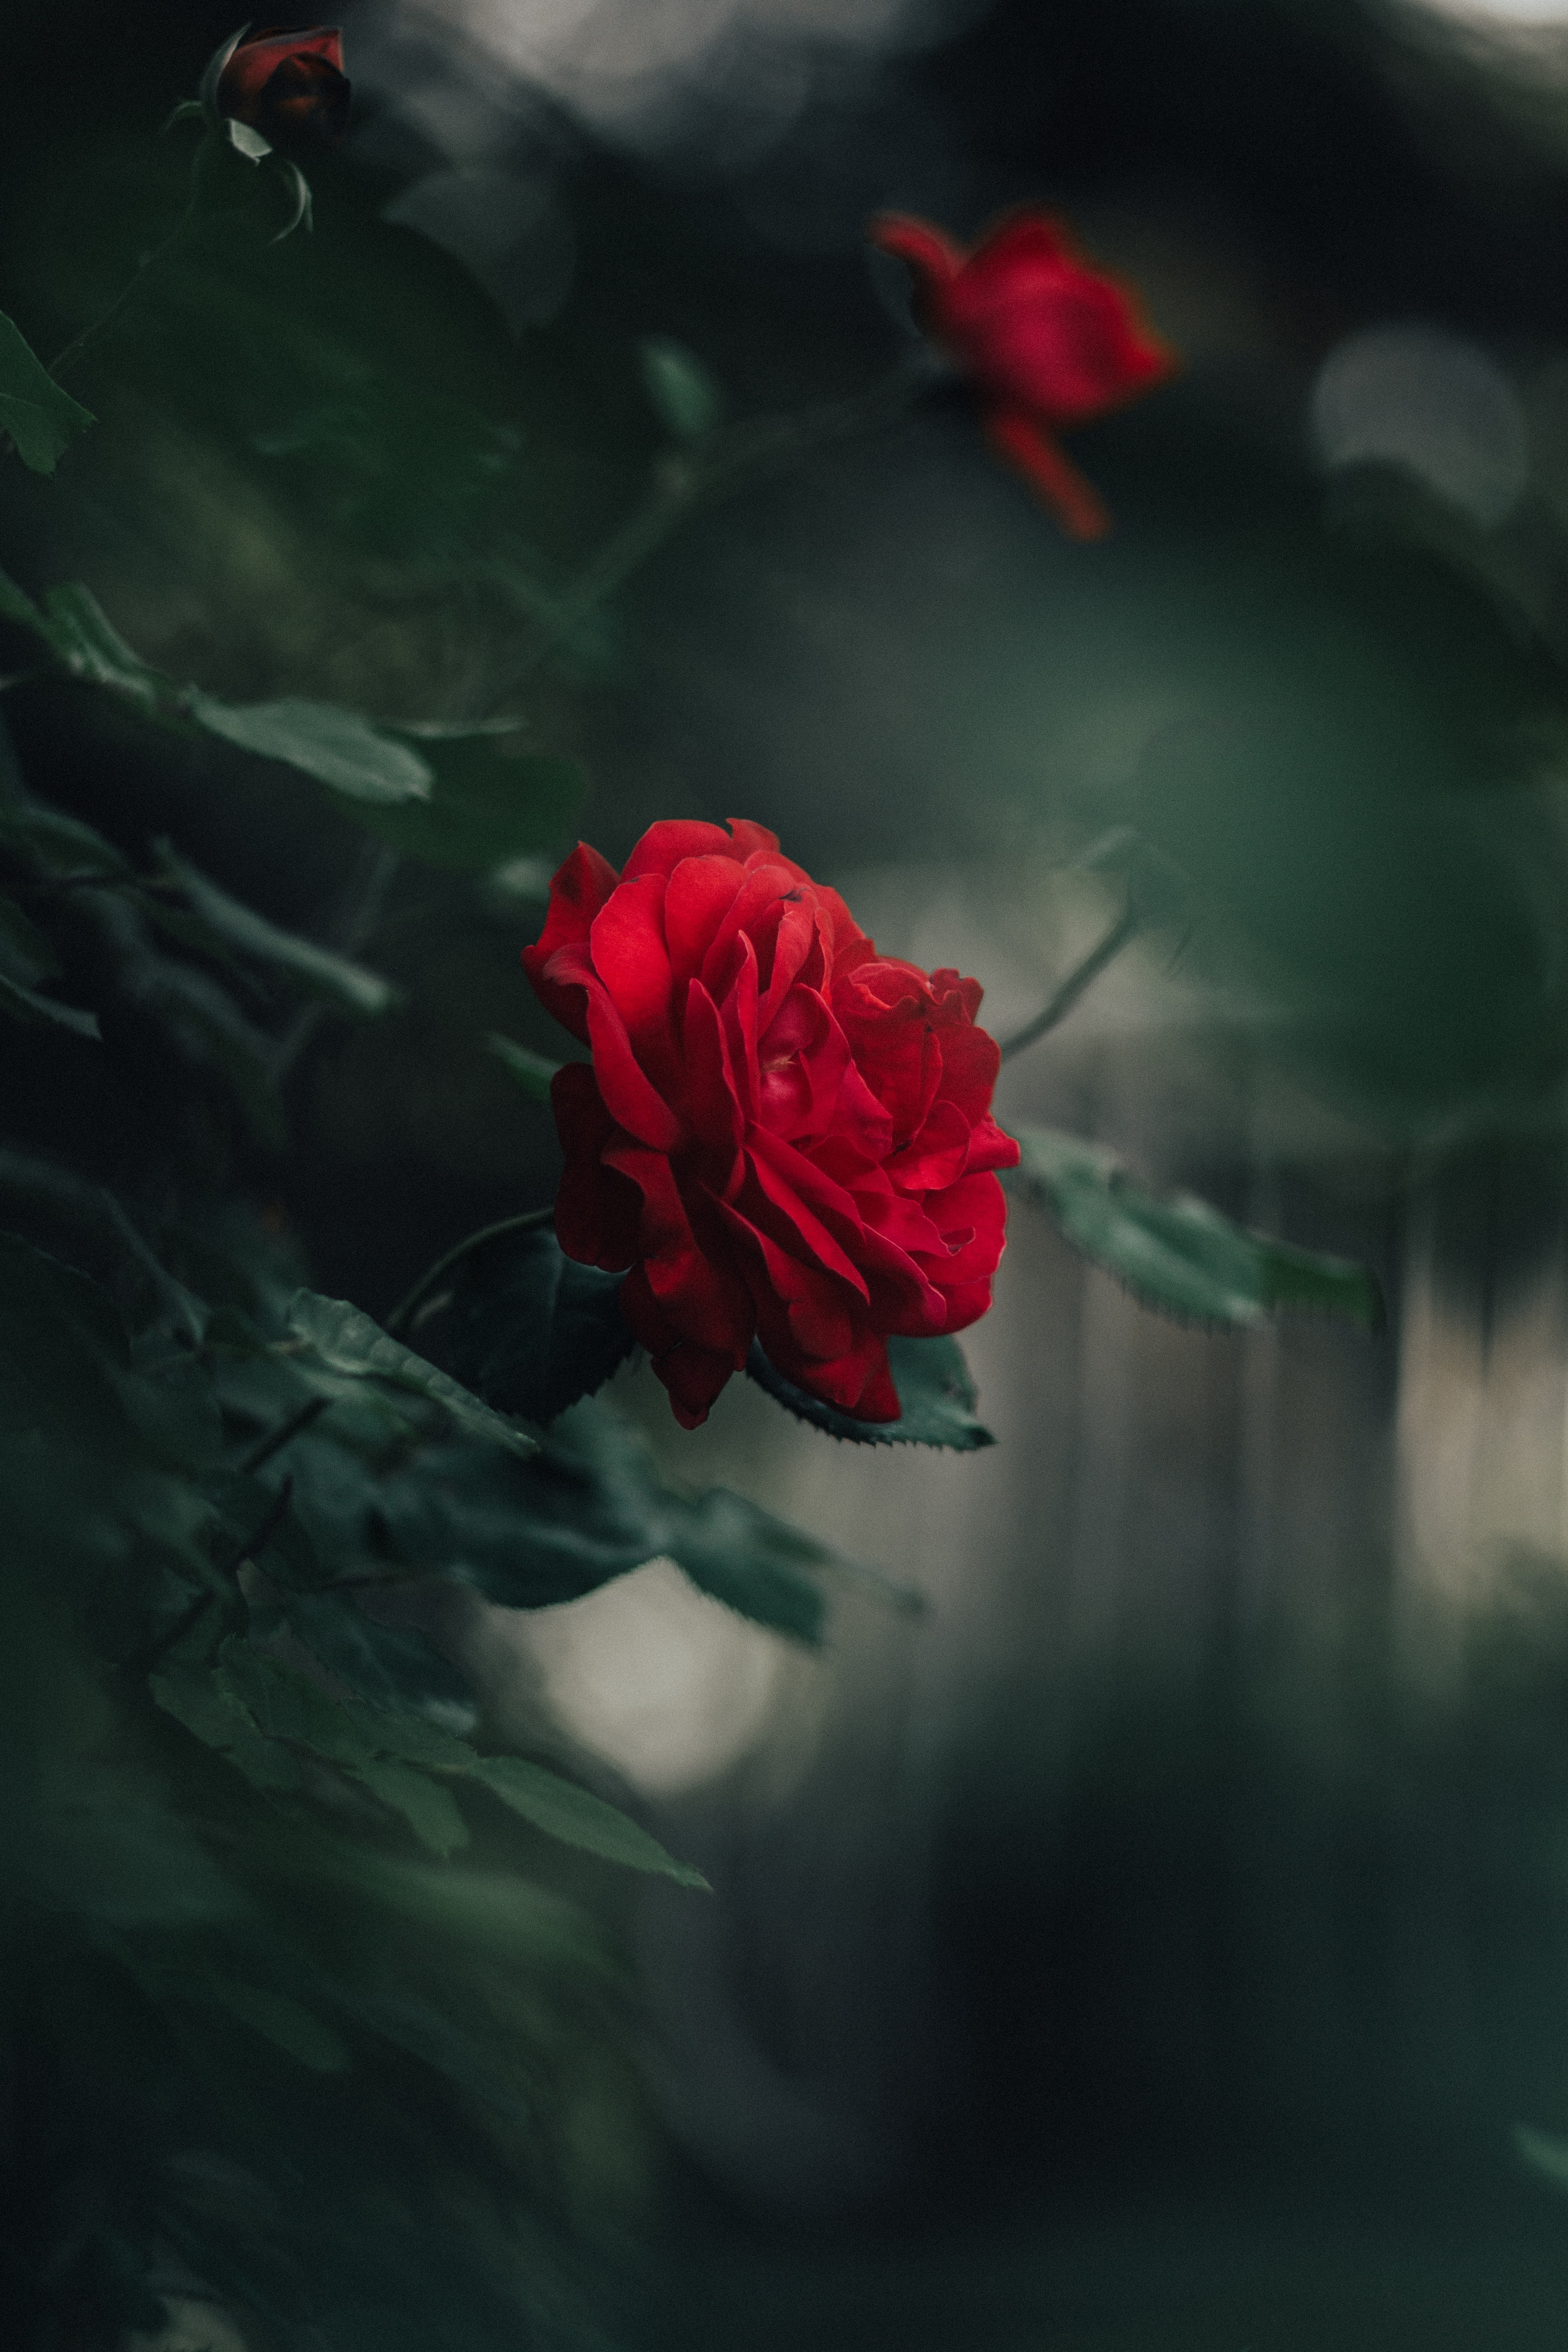 139452 download wallpaper Flowers, Rose Flower, Rose, Petals, Bud, Blur, Smooth screensavers and pictures for free